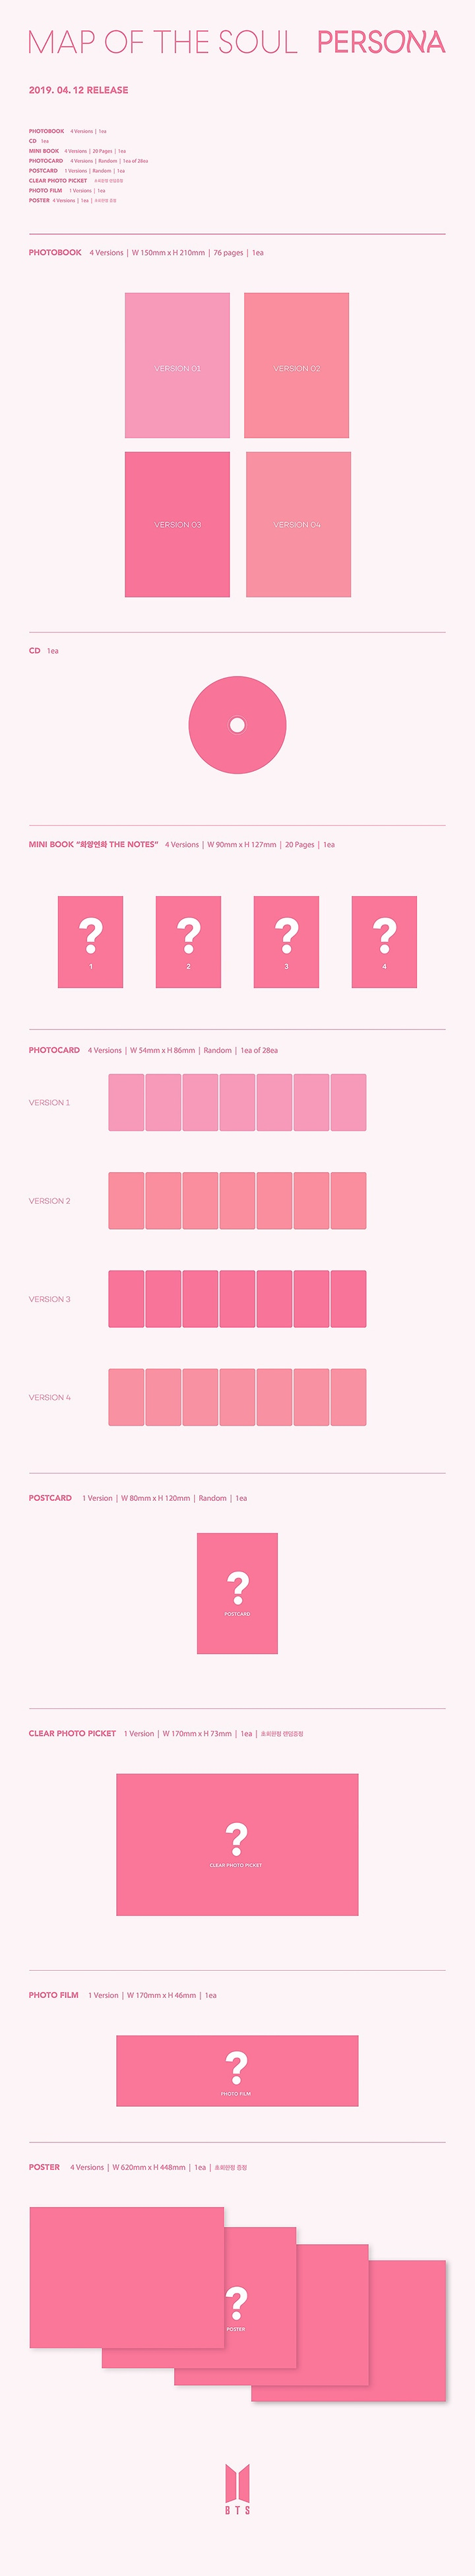 BTS MAP OF THE SOUL : PERSONA